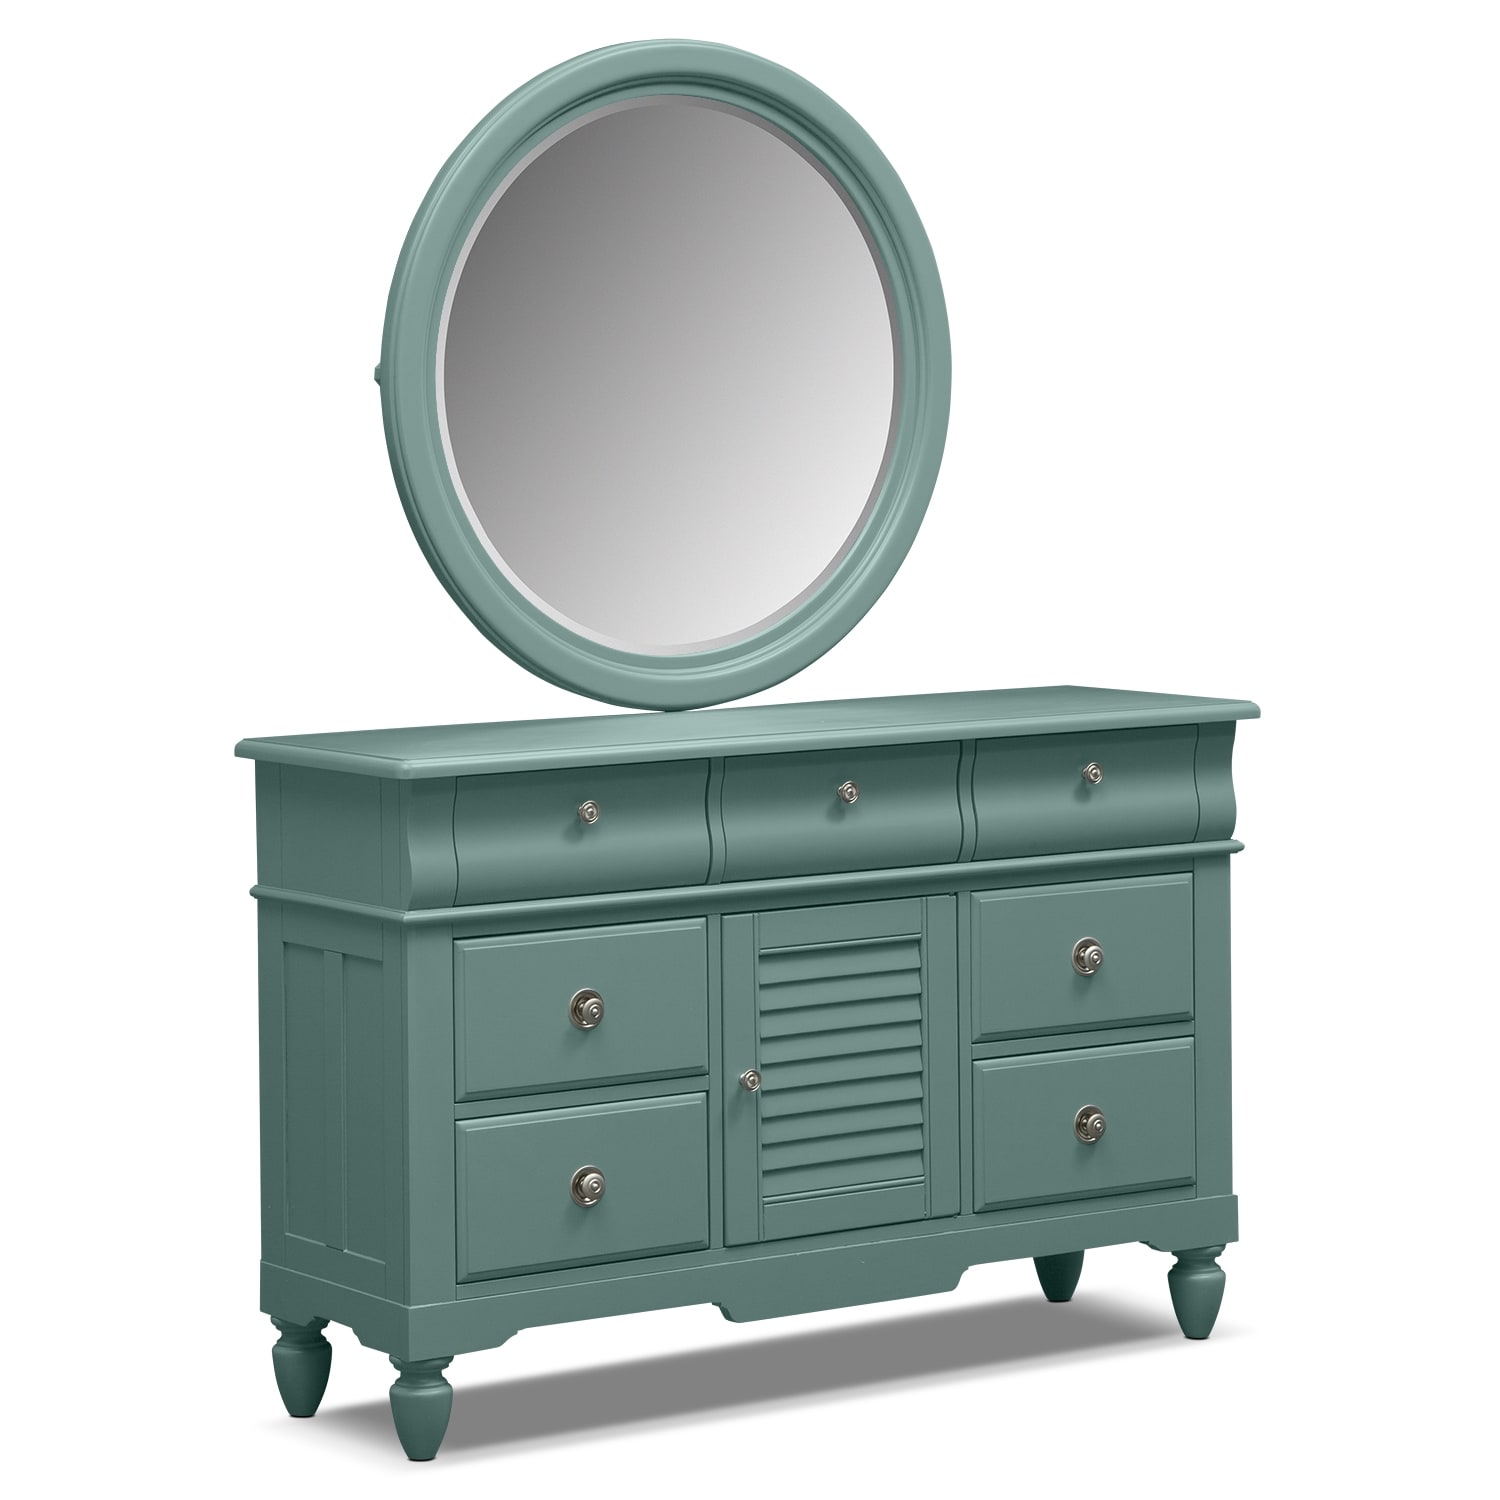 Kids Furniture - Seaside Dresser and Mirror - Blue